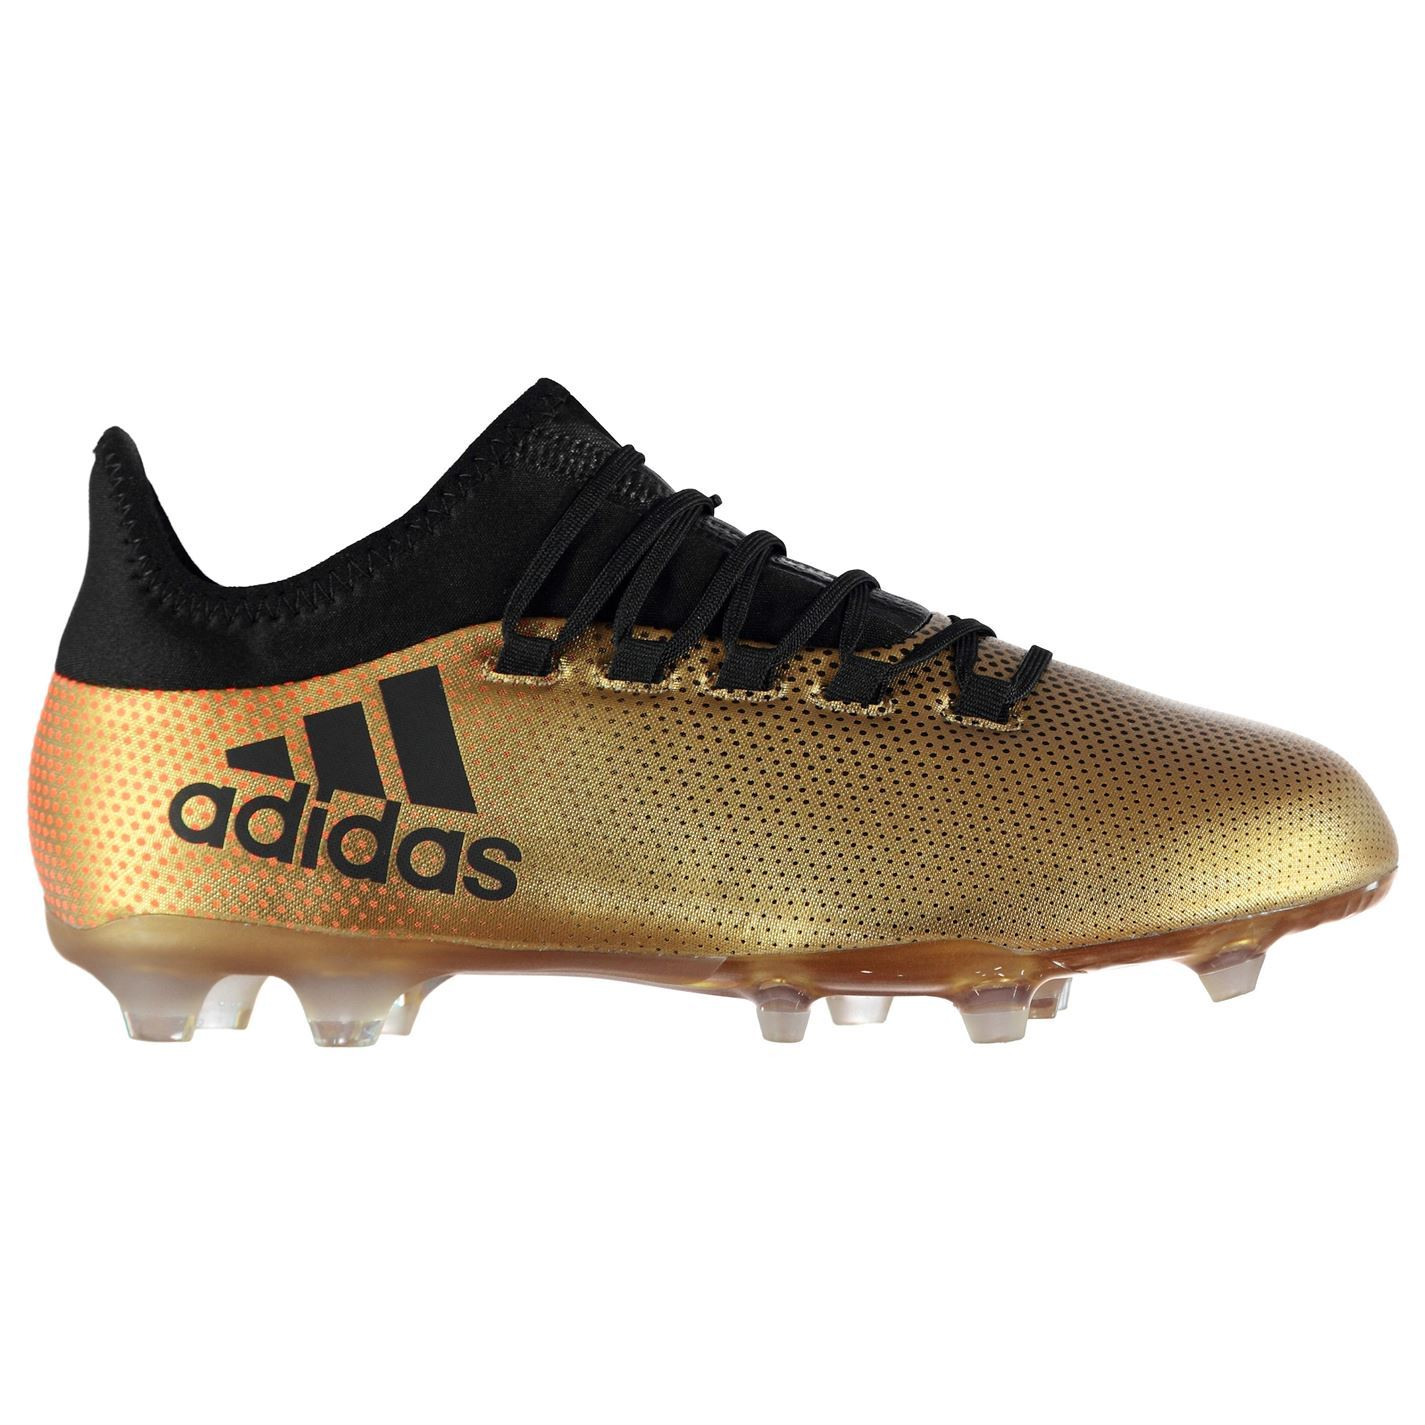 hot sales 3abab ca27d ... adidas X 17.2 FG Firm Ground Football Boots Mens Gold Black Soccer  Shoes Cleats ...